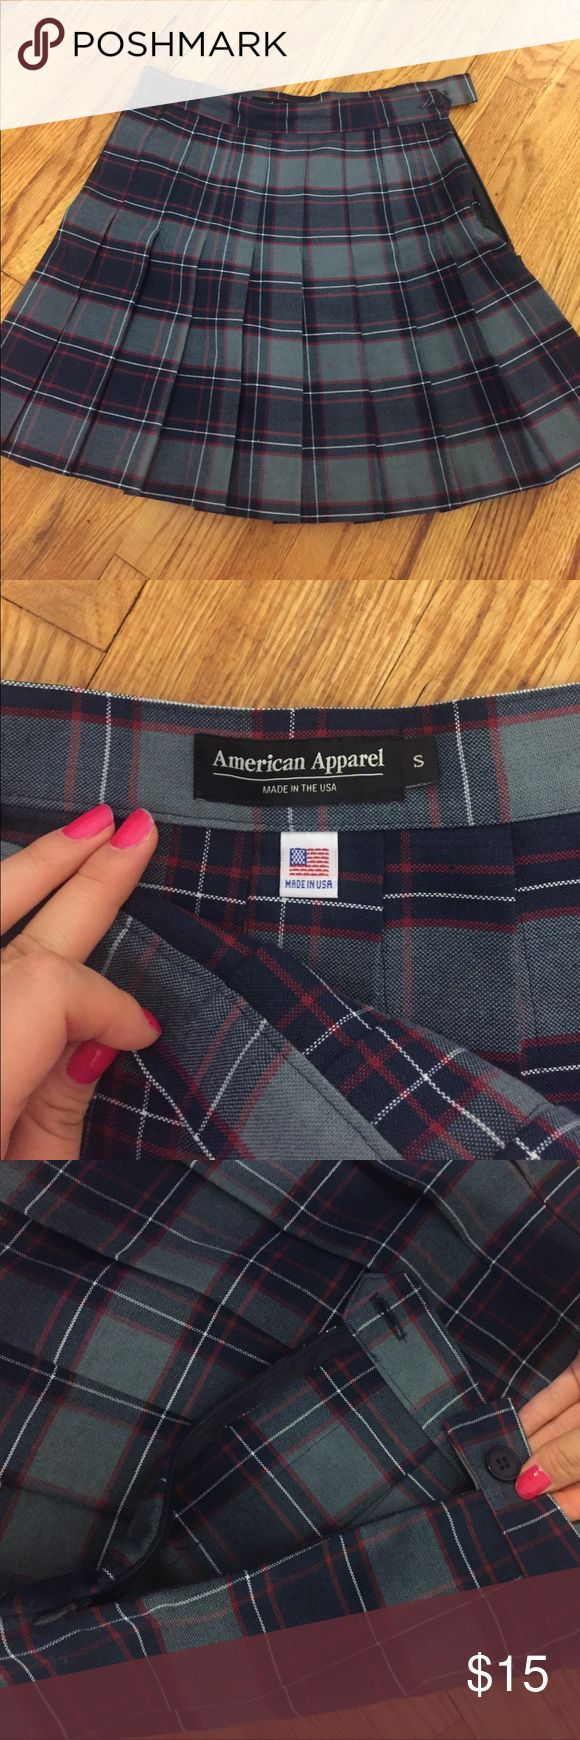 Anerican apparel plaid pleated skirt Very cute and almost new! Has button and zipper on side American Apparel Skirts